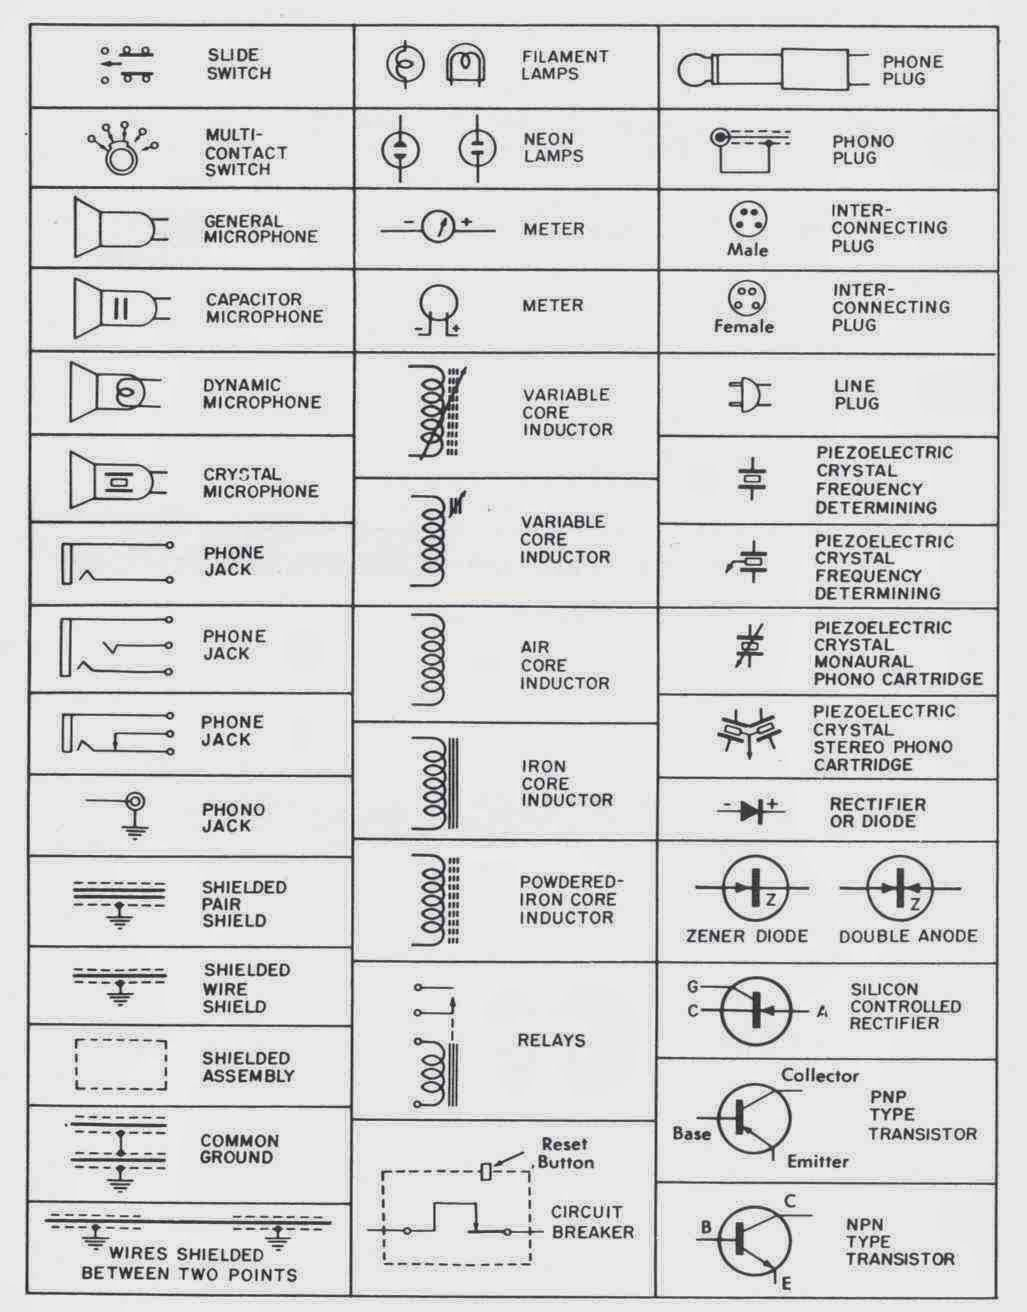 Electrical symbols 11 electrical engineering pics electric electrical symbols 11 electrical engineering pics biocorpaavc